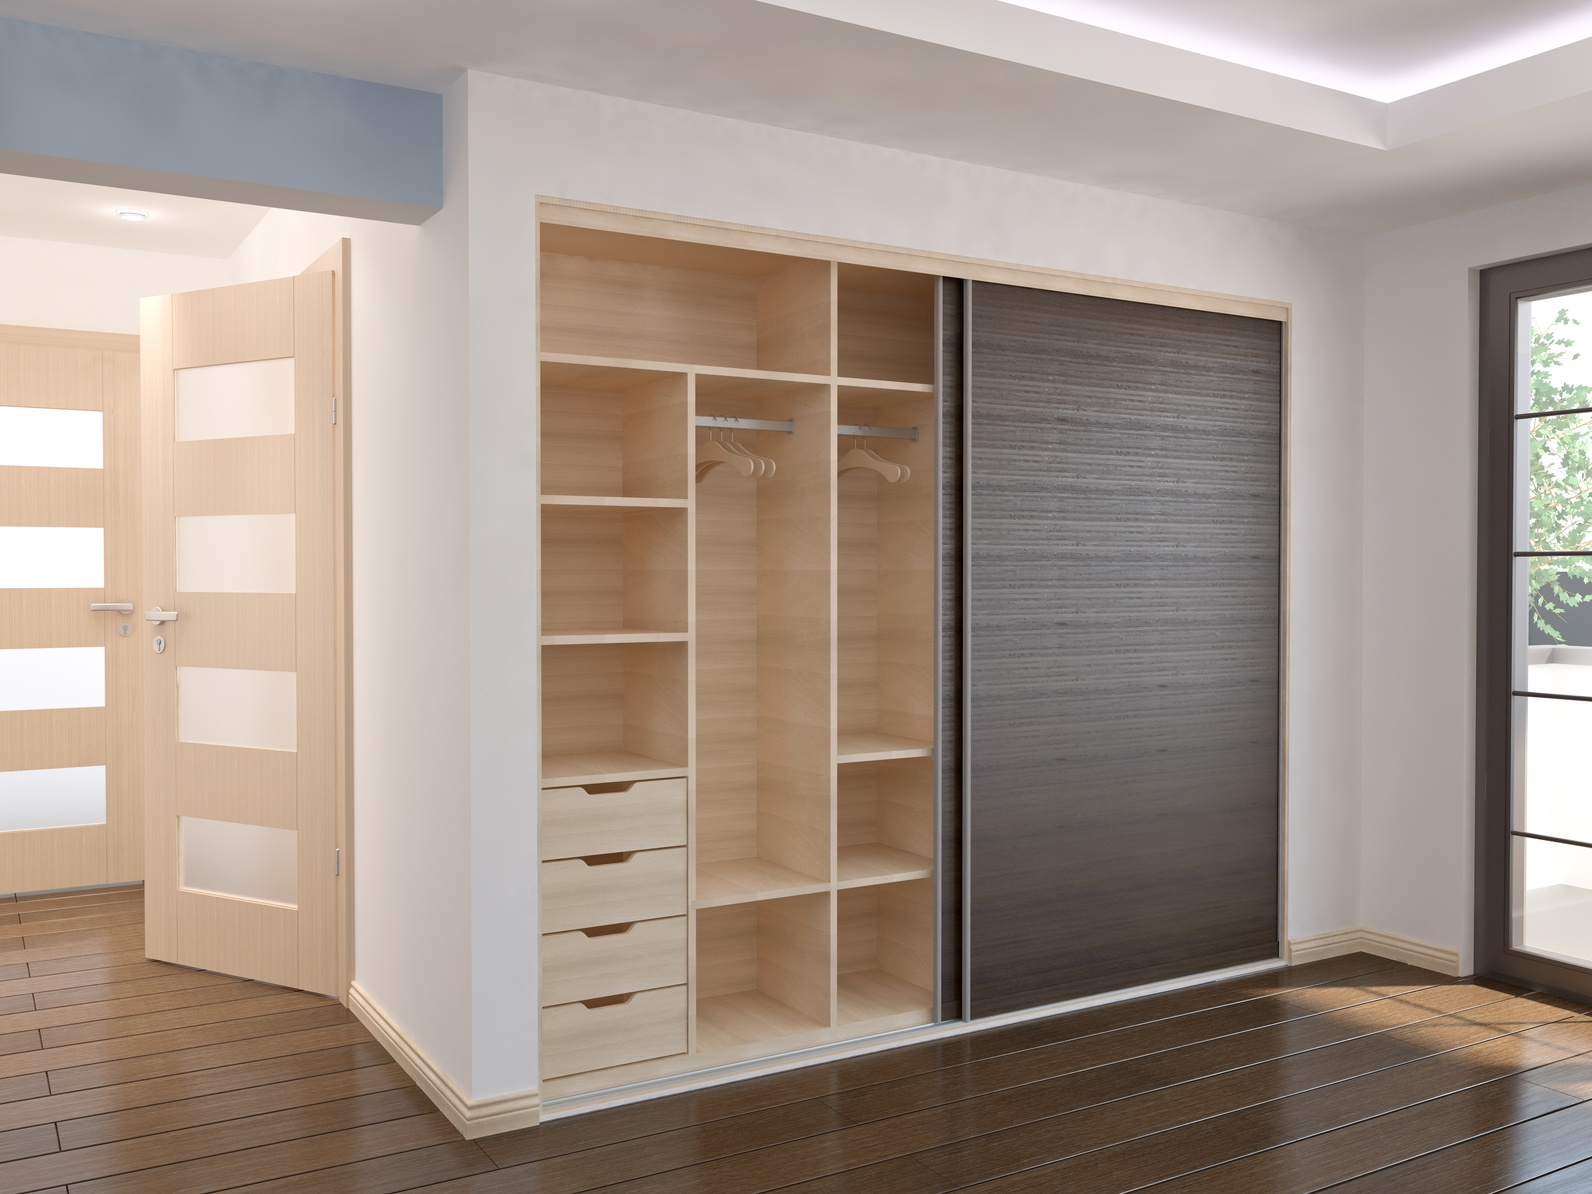 Bedroom Sliding Doors Sliding Wardrobe Doors Kits Bedroom Inside Cupboard Sliding Doors (View 10 of 25)